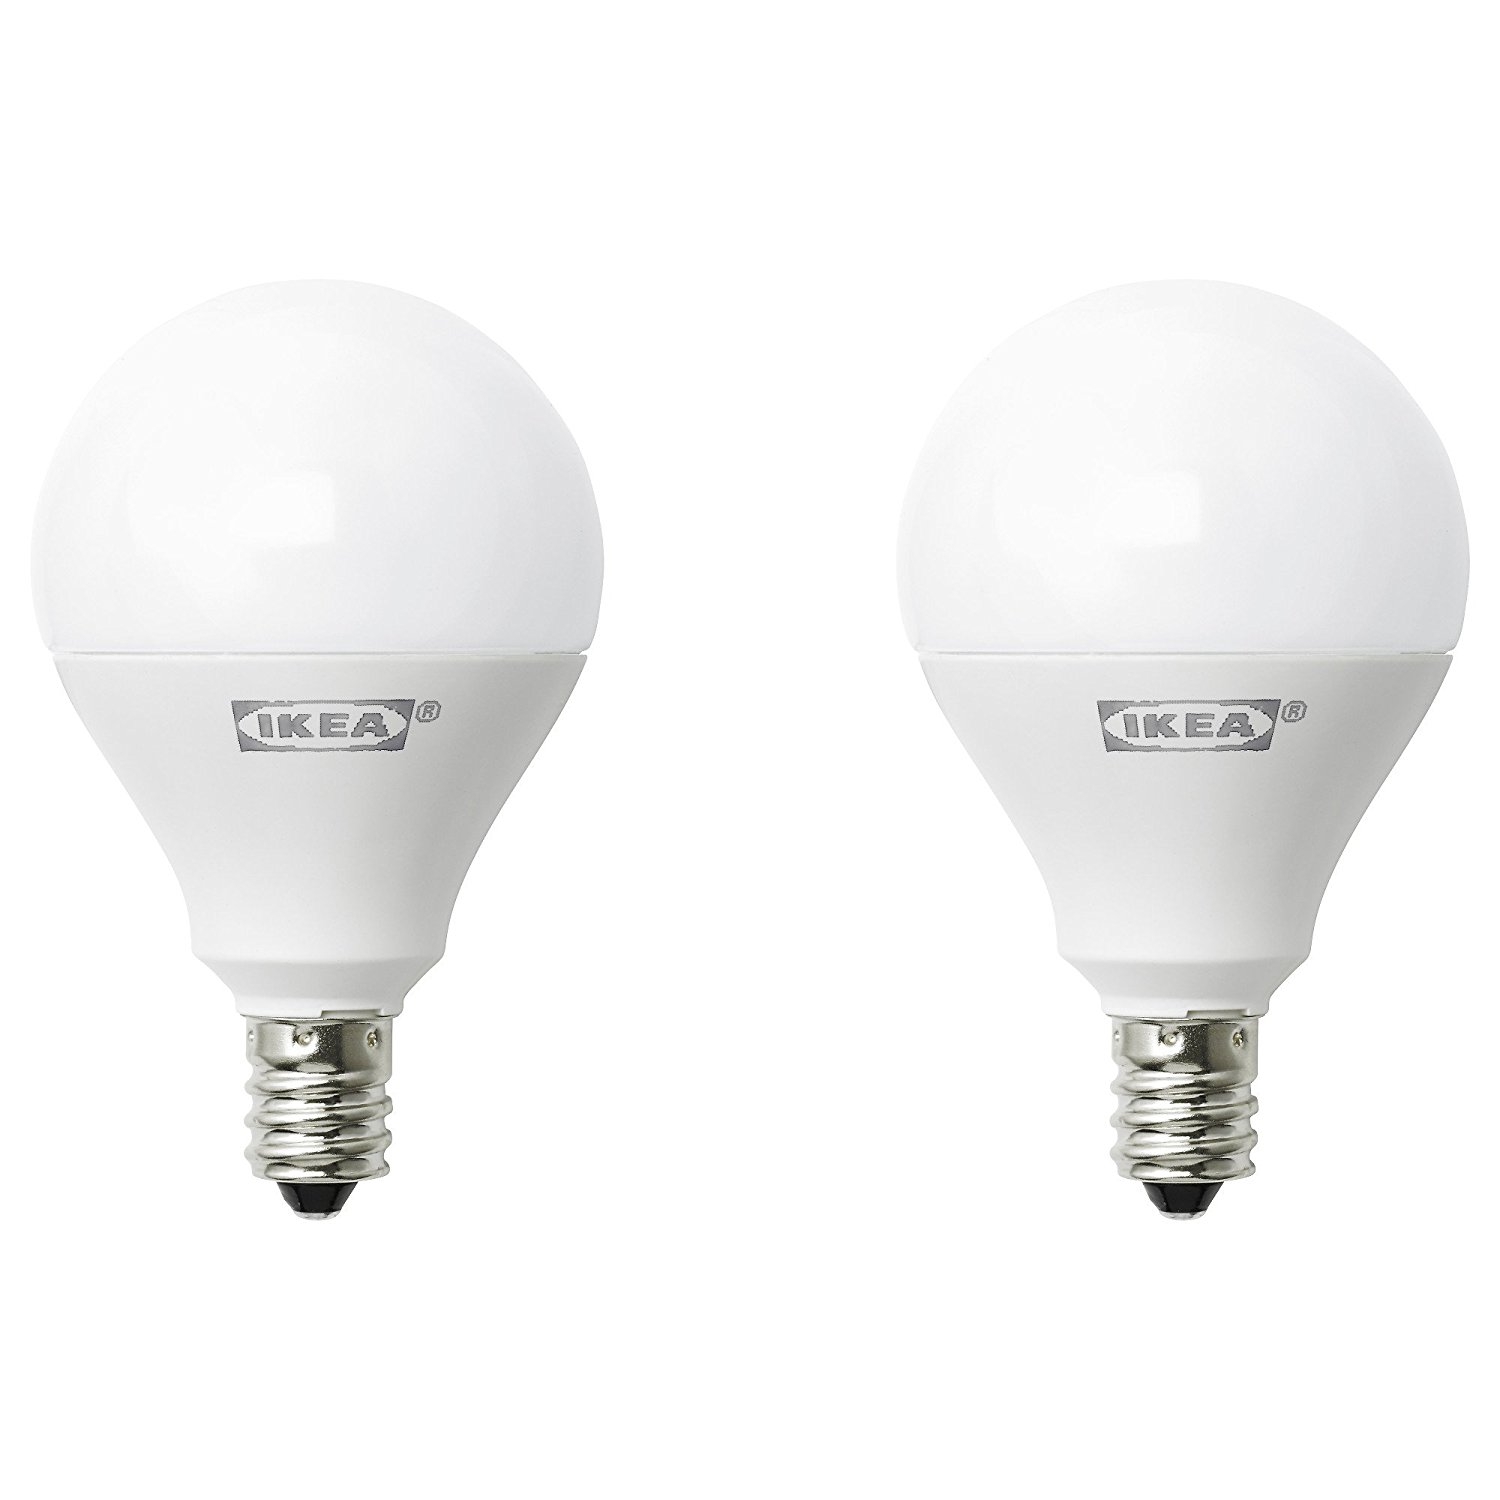 5 Watt Led Ikea Ryet E12 400 Lumen Led Light Bulb 5 Watt Pack Of 2